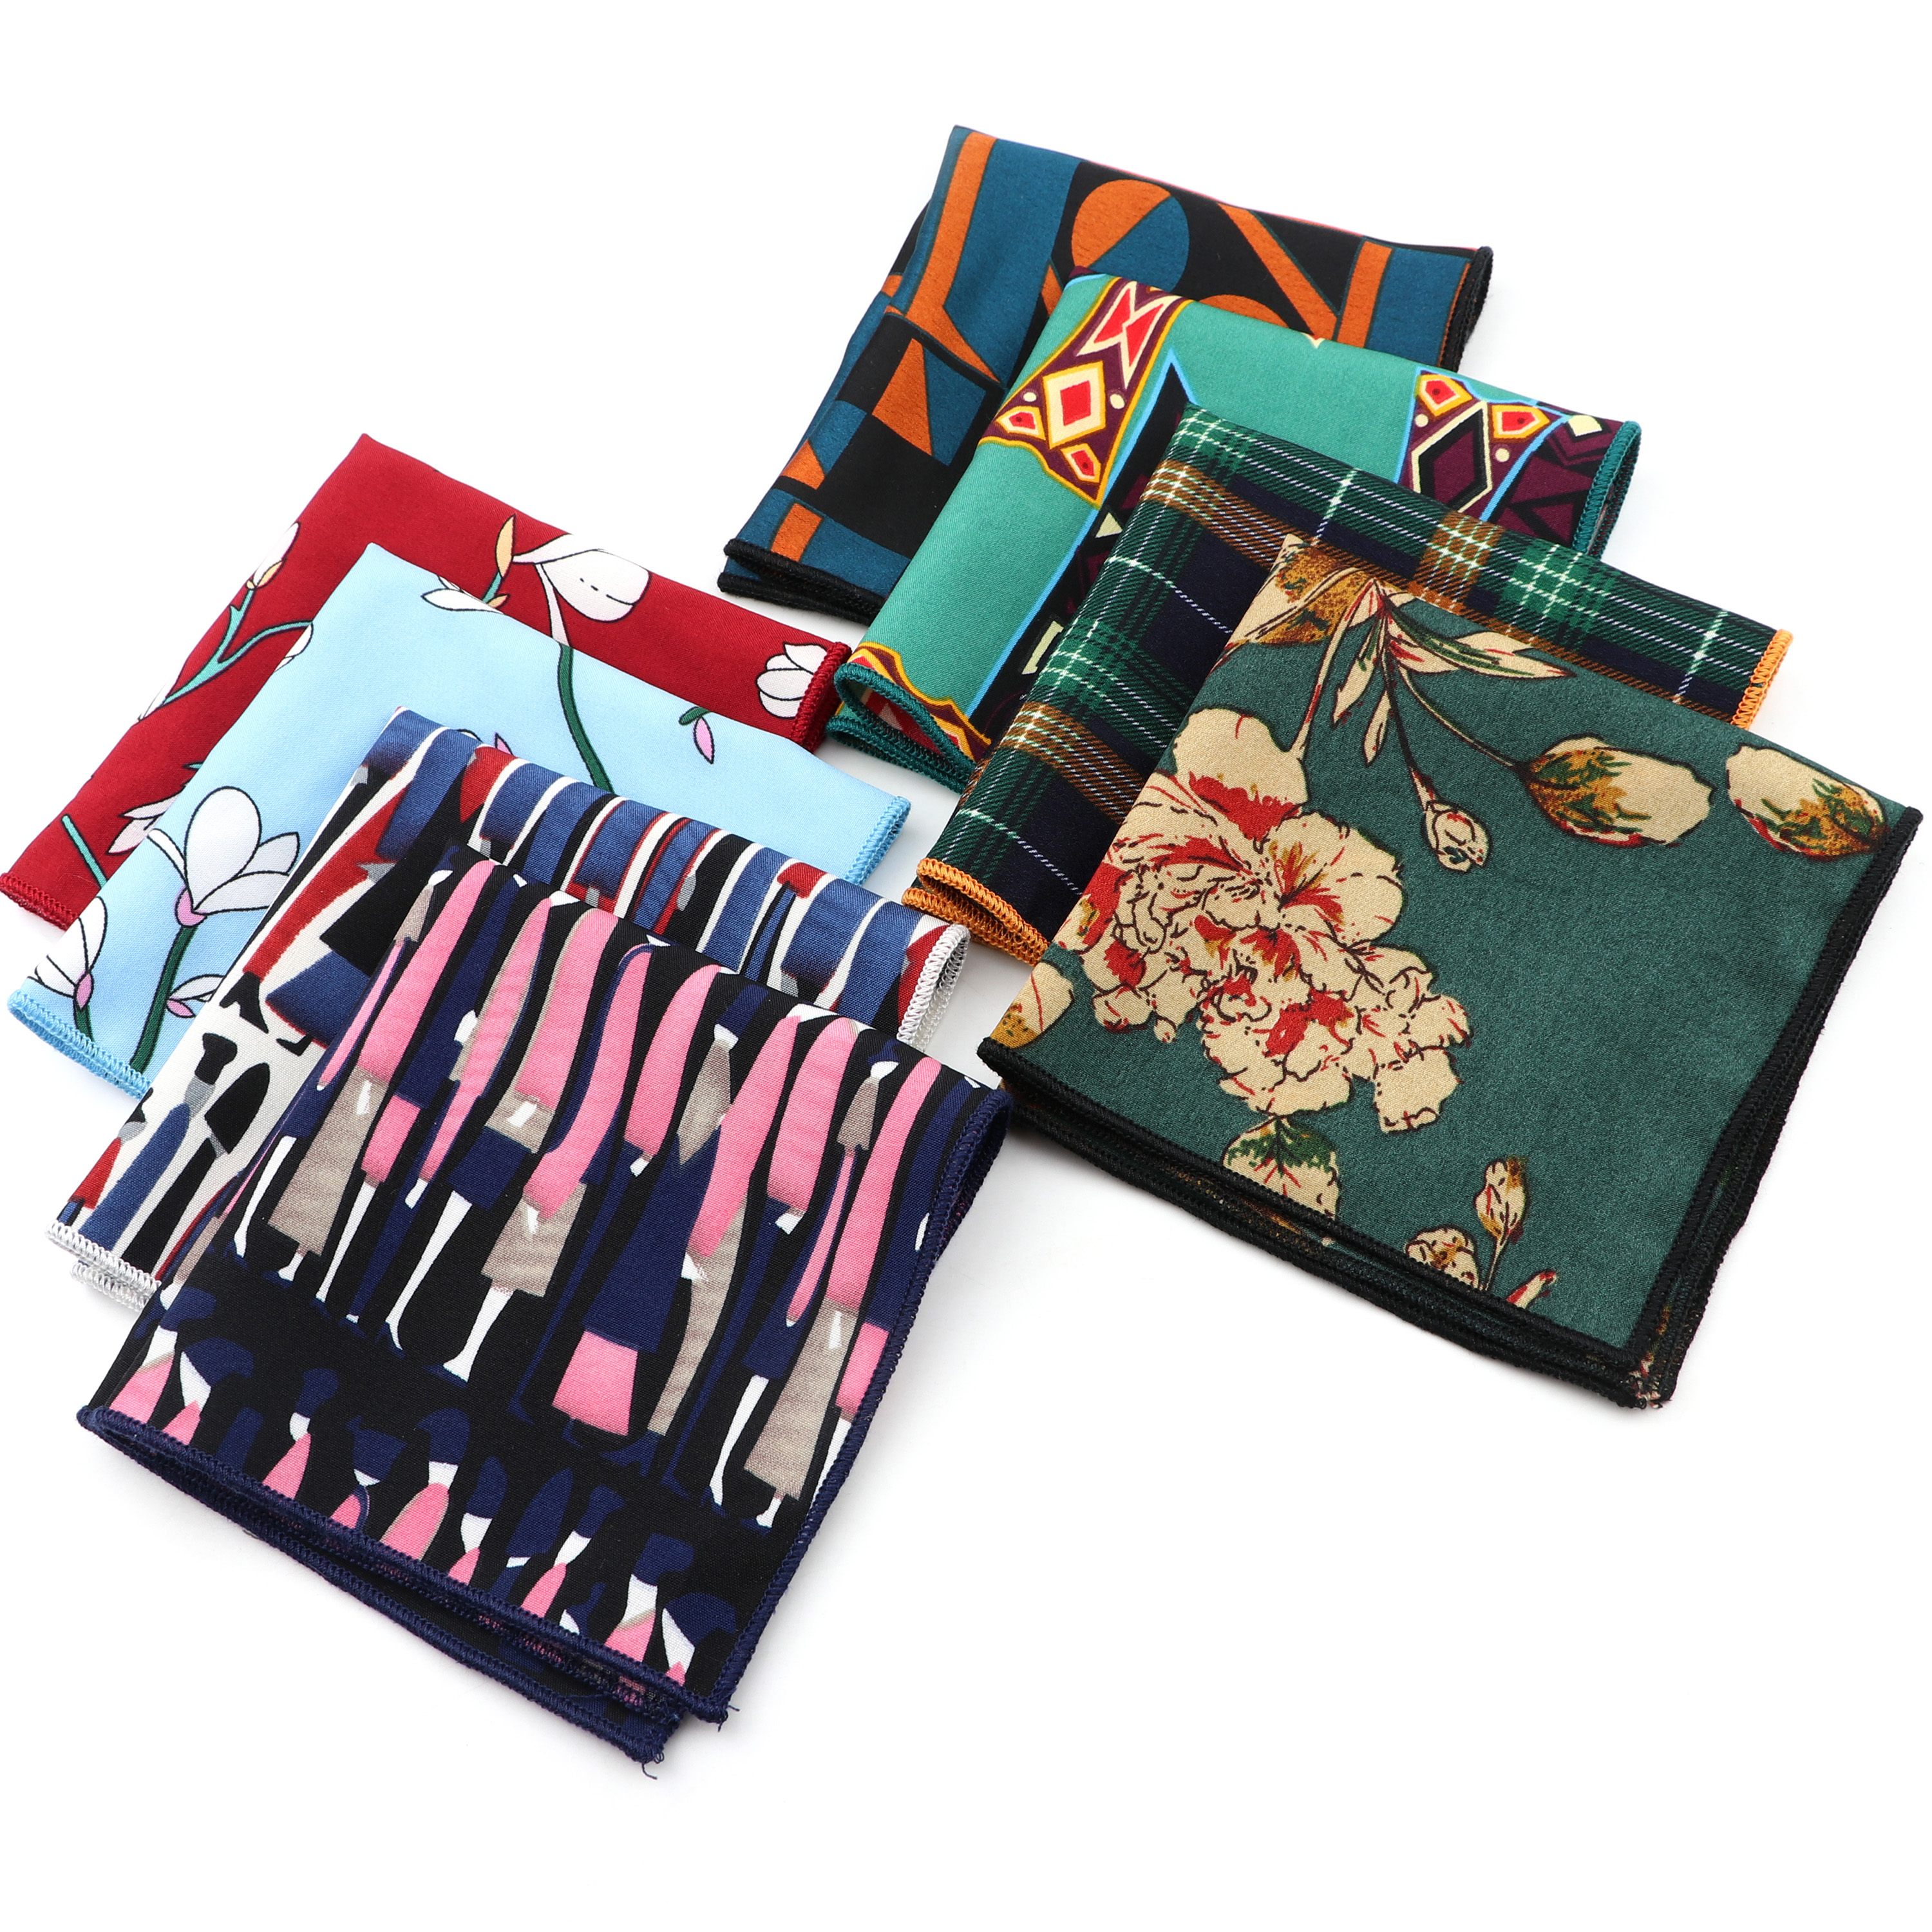 Smooth Soft Handkerchief Scarves Vintage Geometric Floral Paisley Striped  Banquet Pocket Square Kids Hankies Accessory Gift